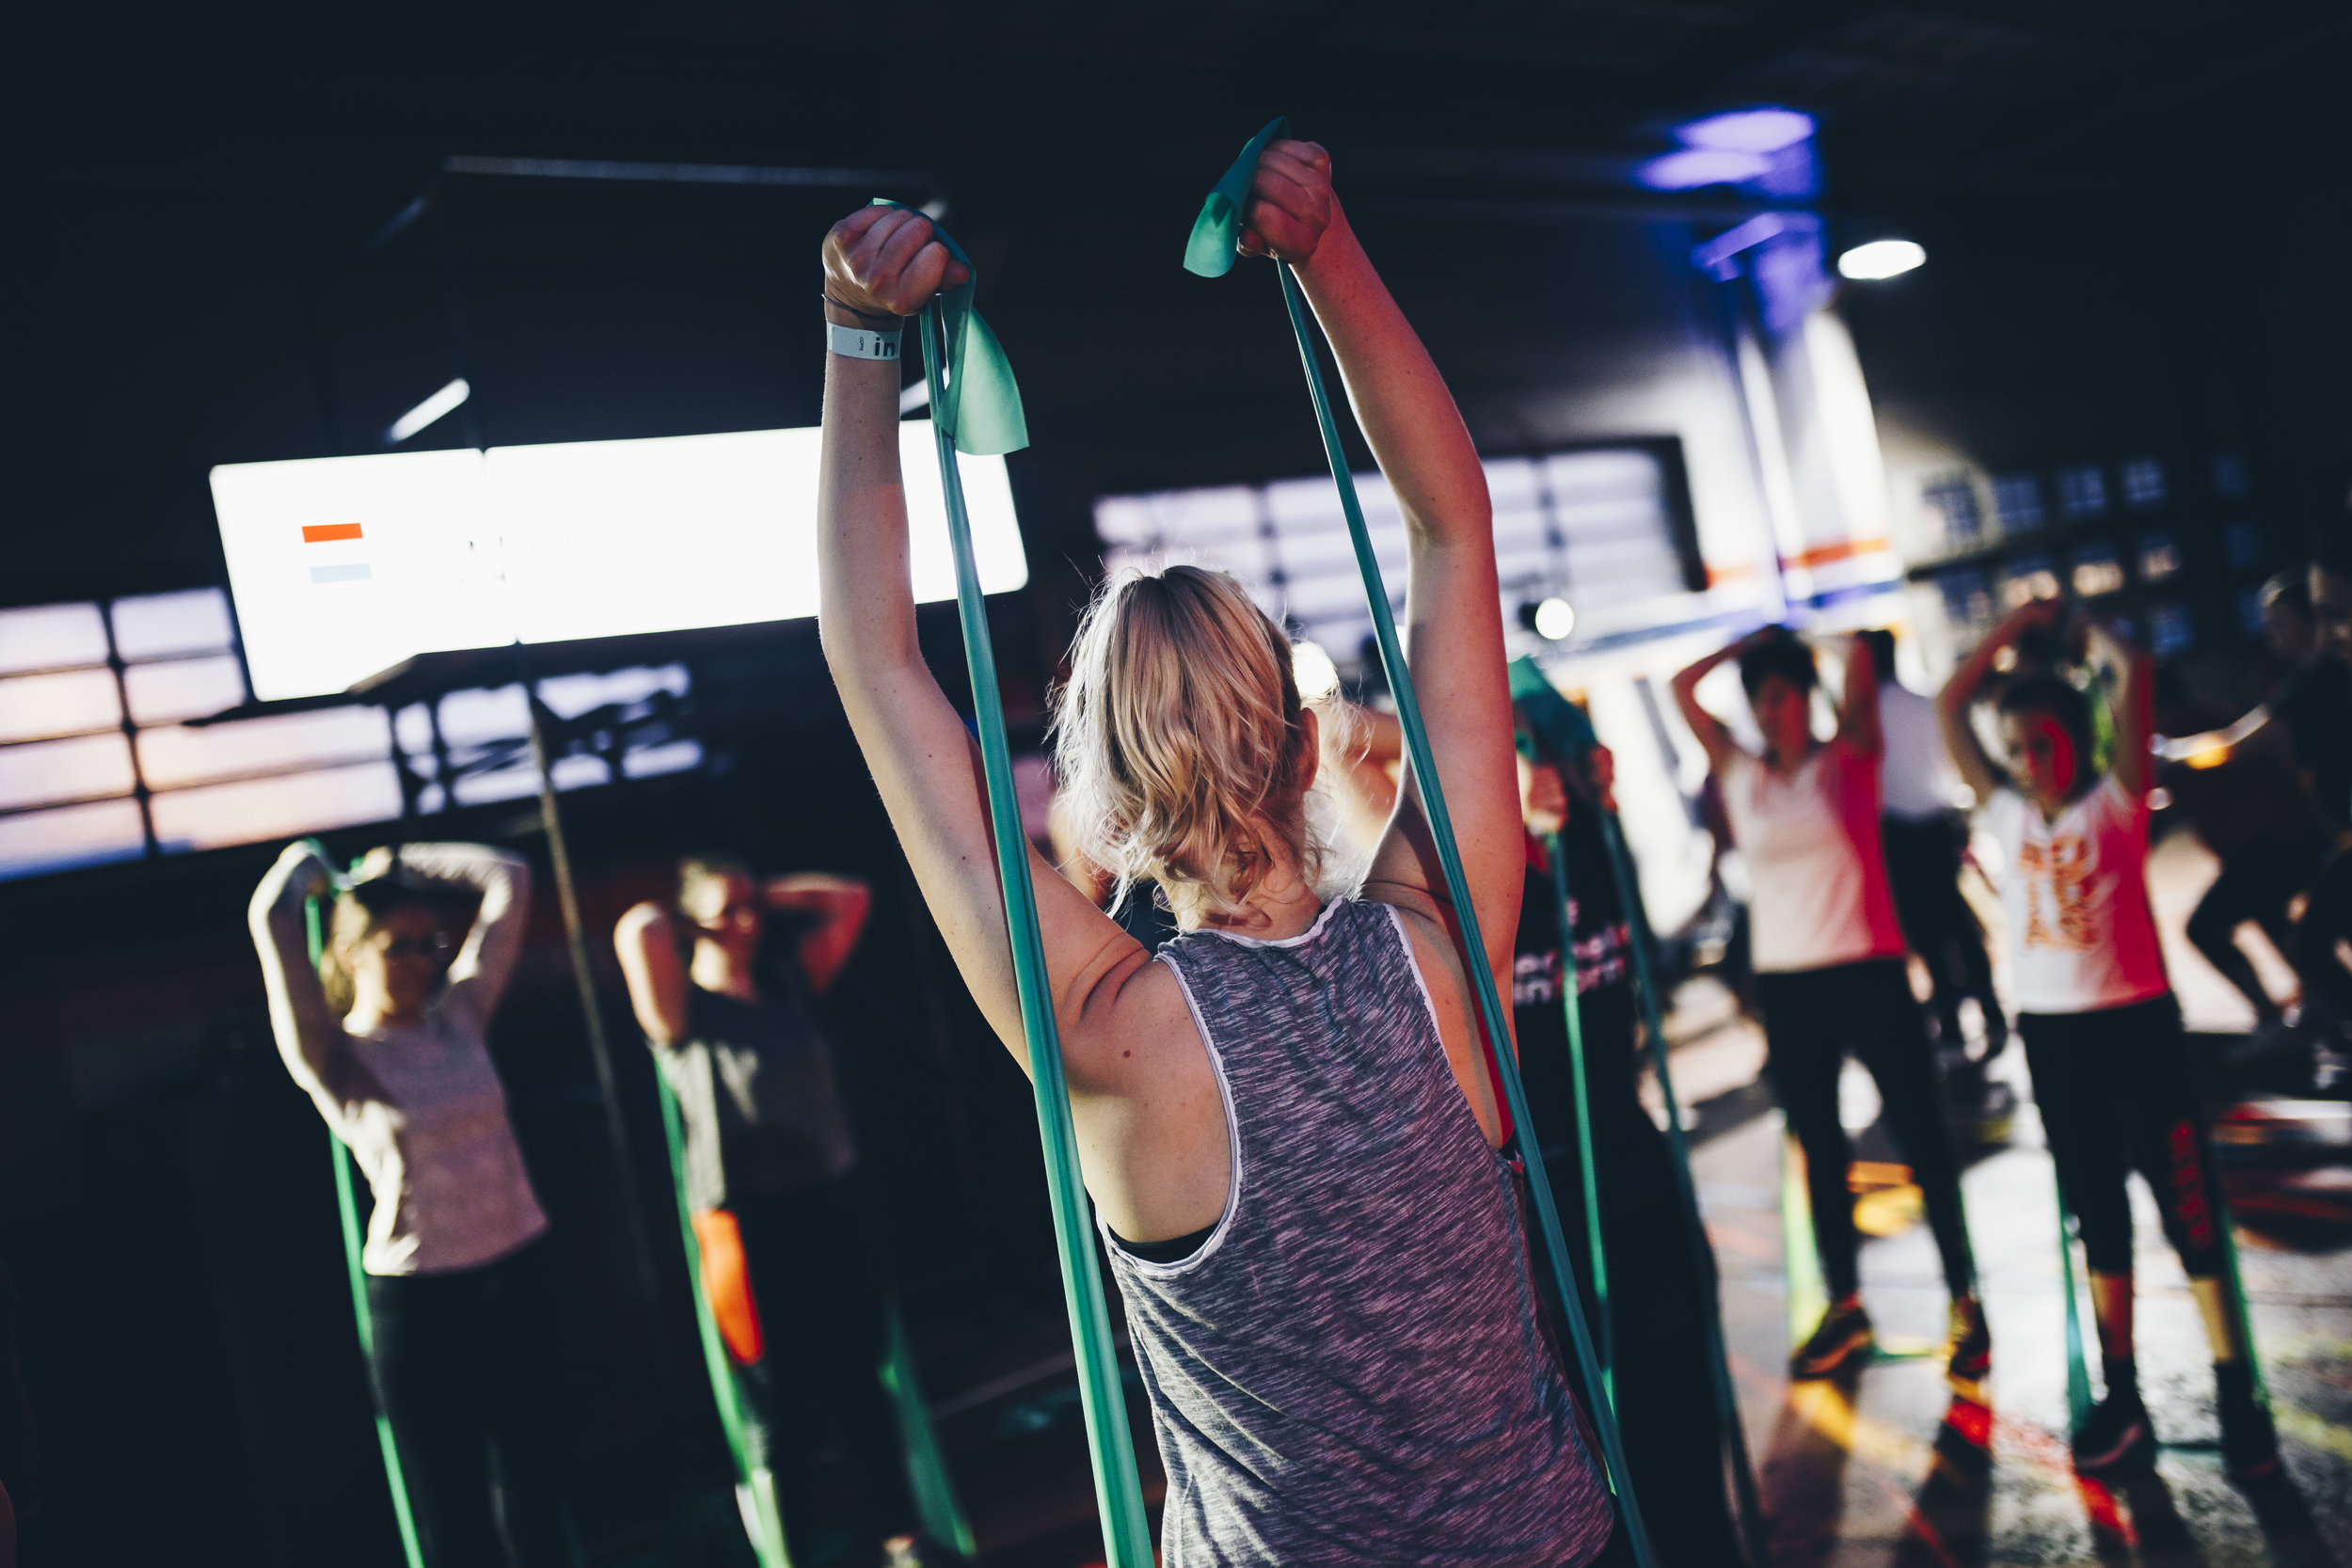 - We often hear that exercise is part of a healthy lifestyle. We know it is good for our heart health, that it can help prevent obesity and diabetes but what if I told you it can also help prevent and treat depression?